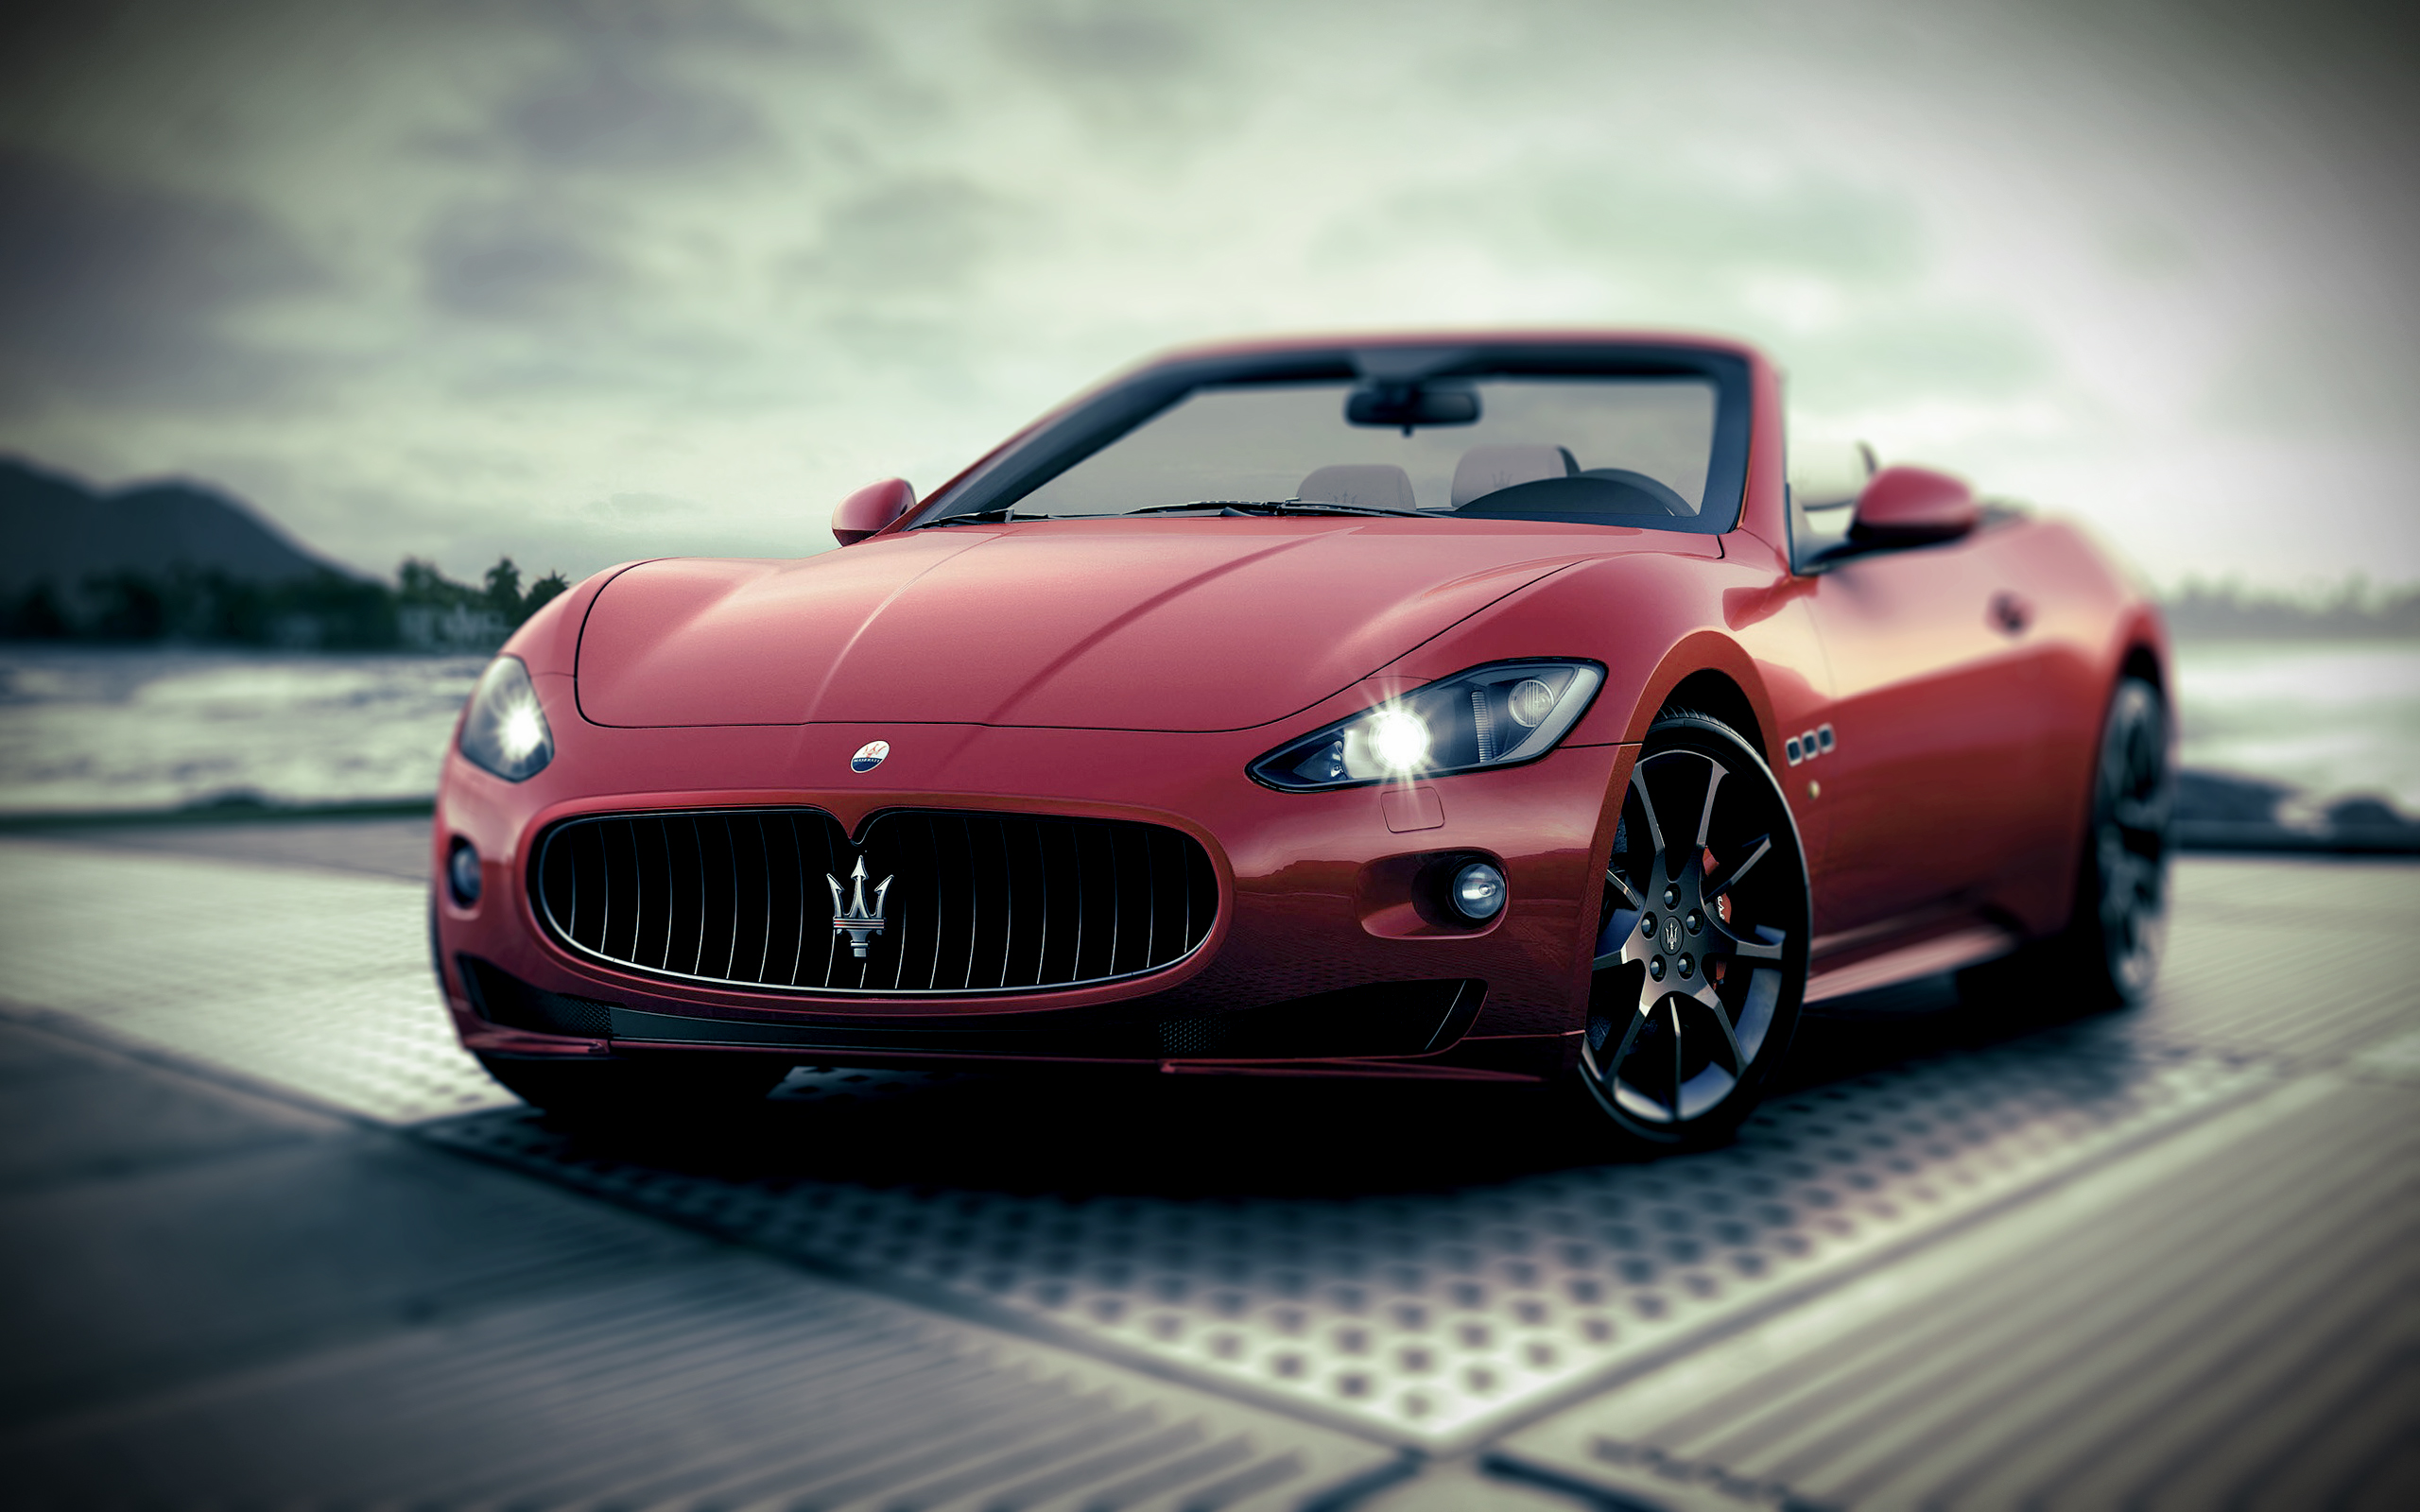 Maserati Images HD Wallpaper And Background Photos